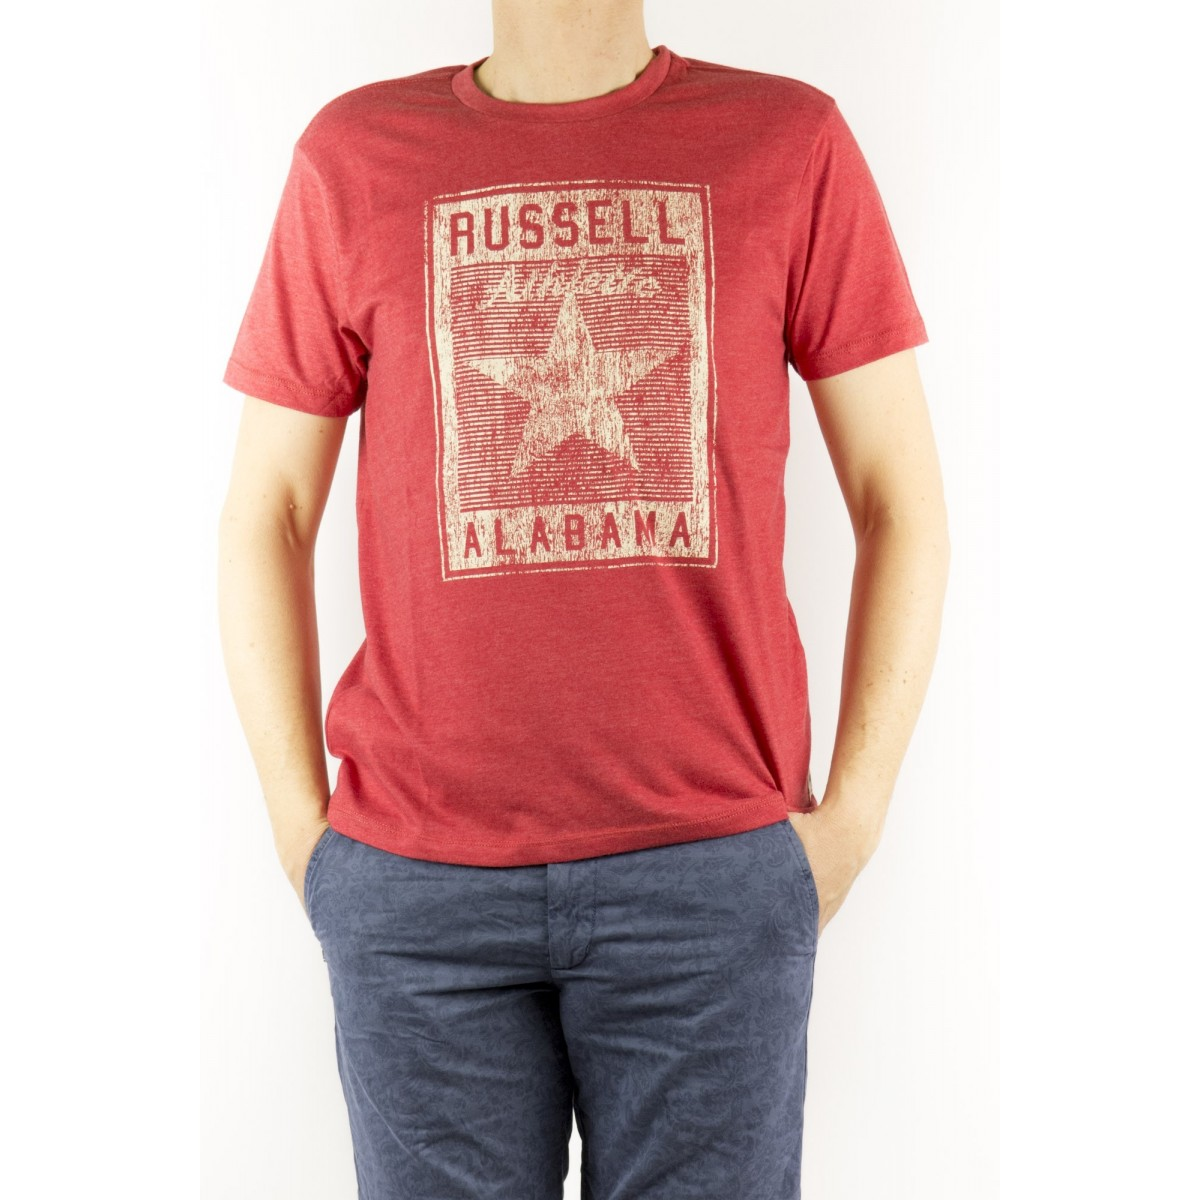 T-Shirt Russell Athletic Vintage - Russell Athletic Vintage A5 618 - 1